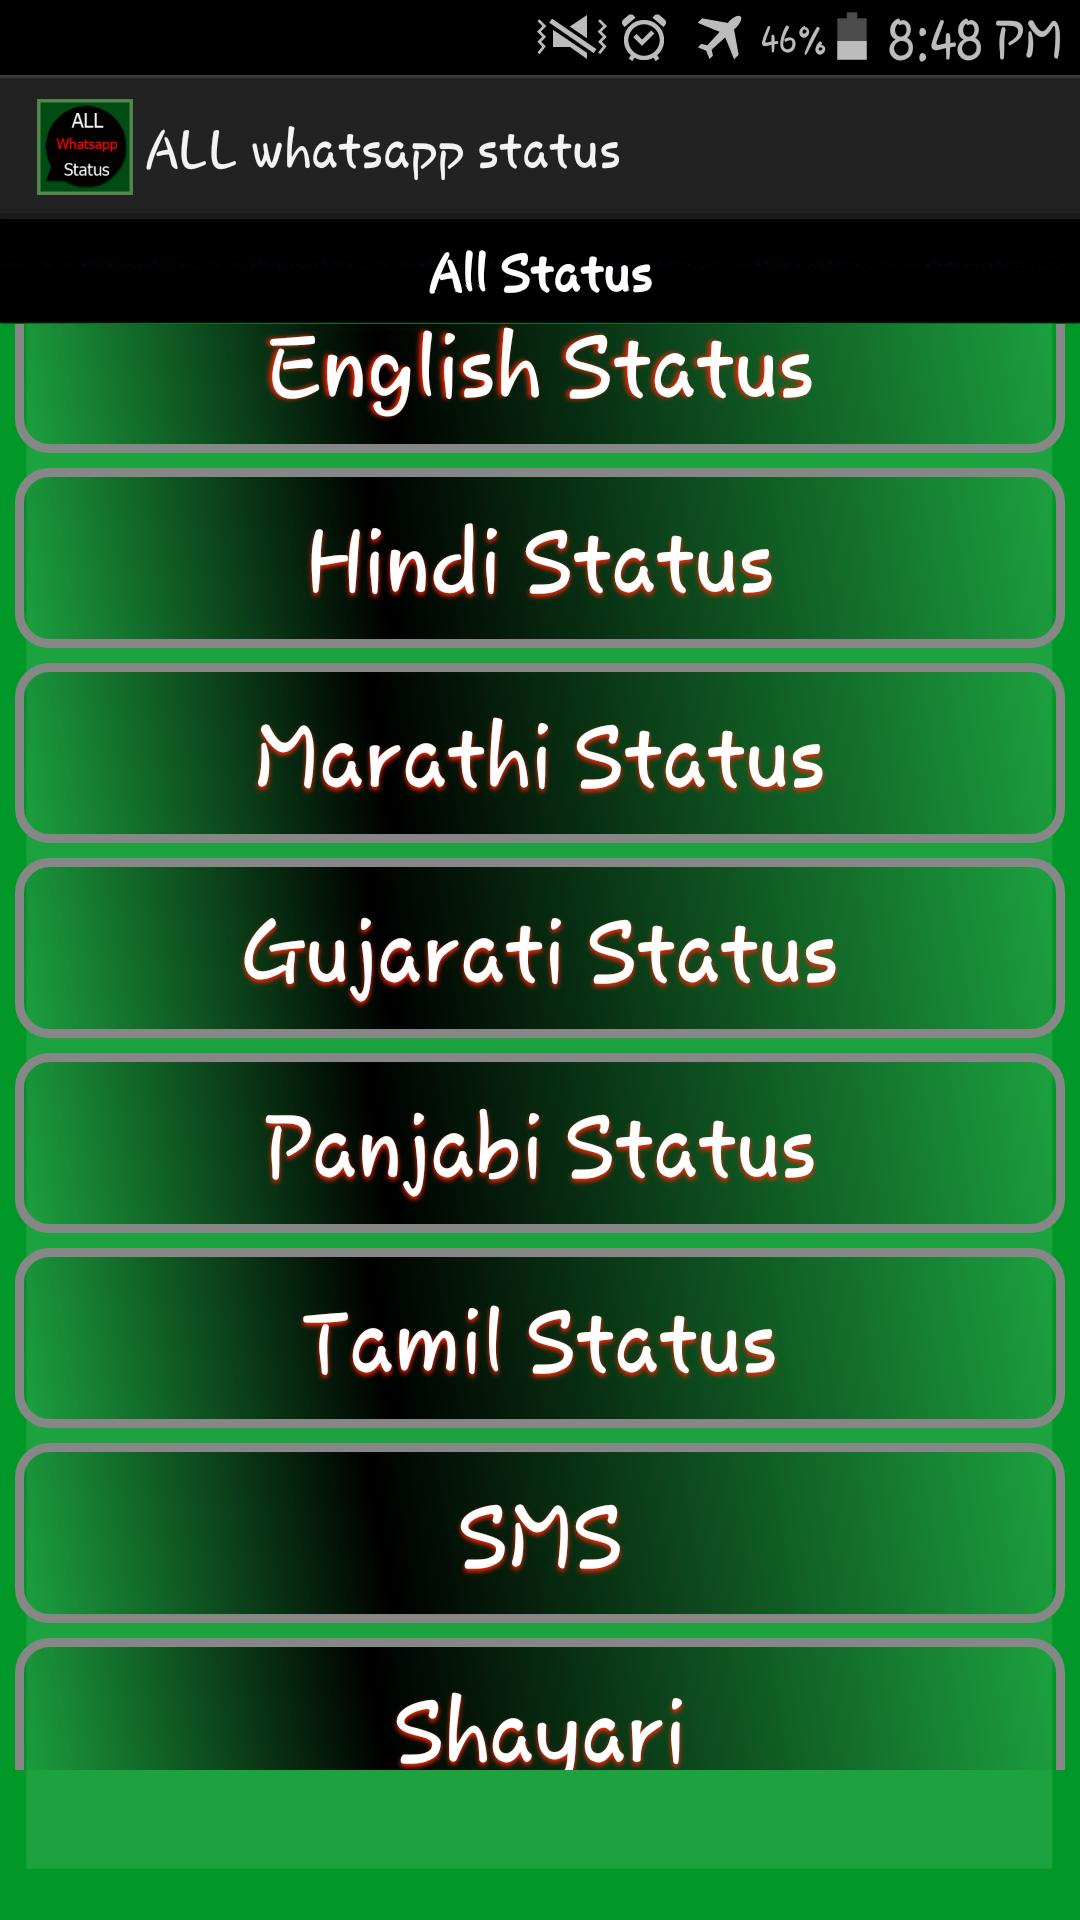 All Whatsapp Status For Android Apk Download